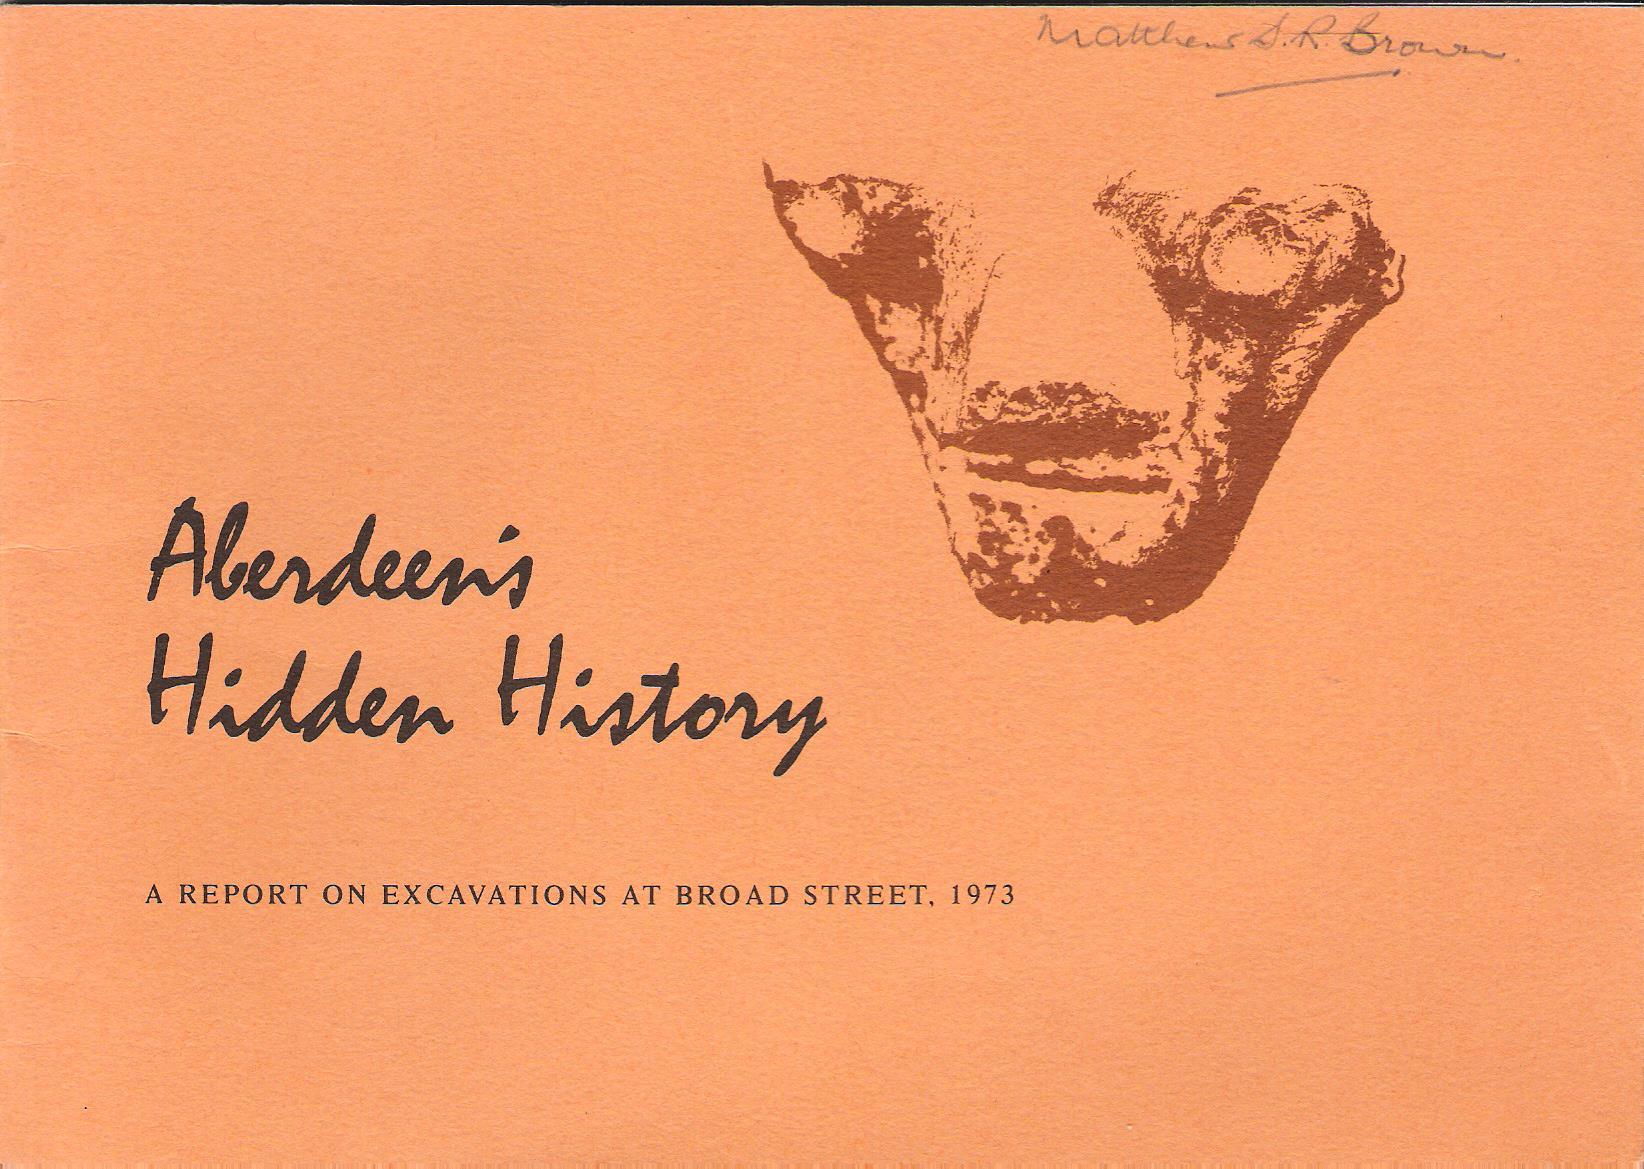 Image for Aberdeen's Hidden History: A Report on Excavations at Broad Street, 1973.